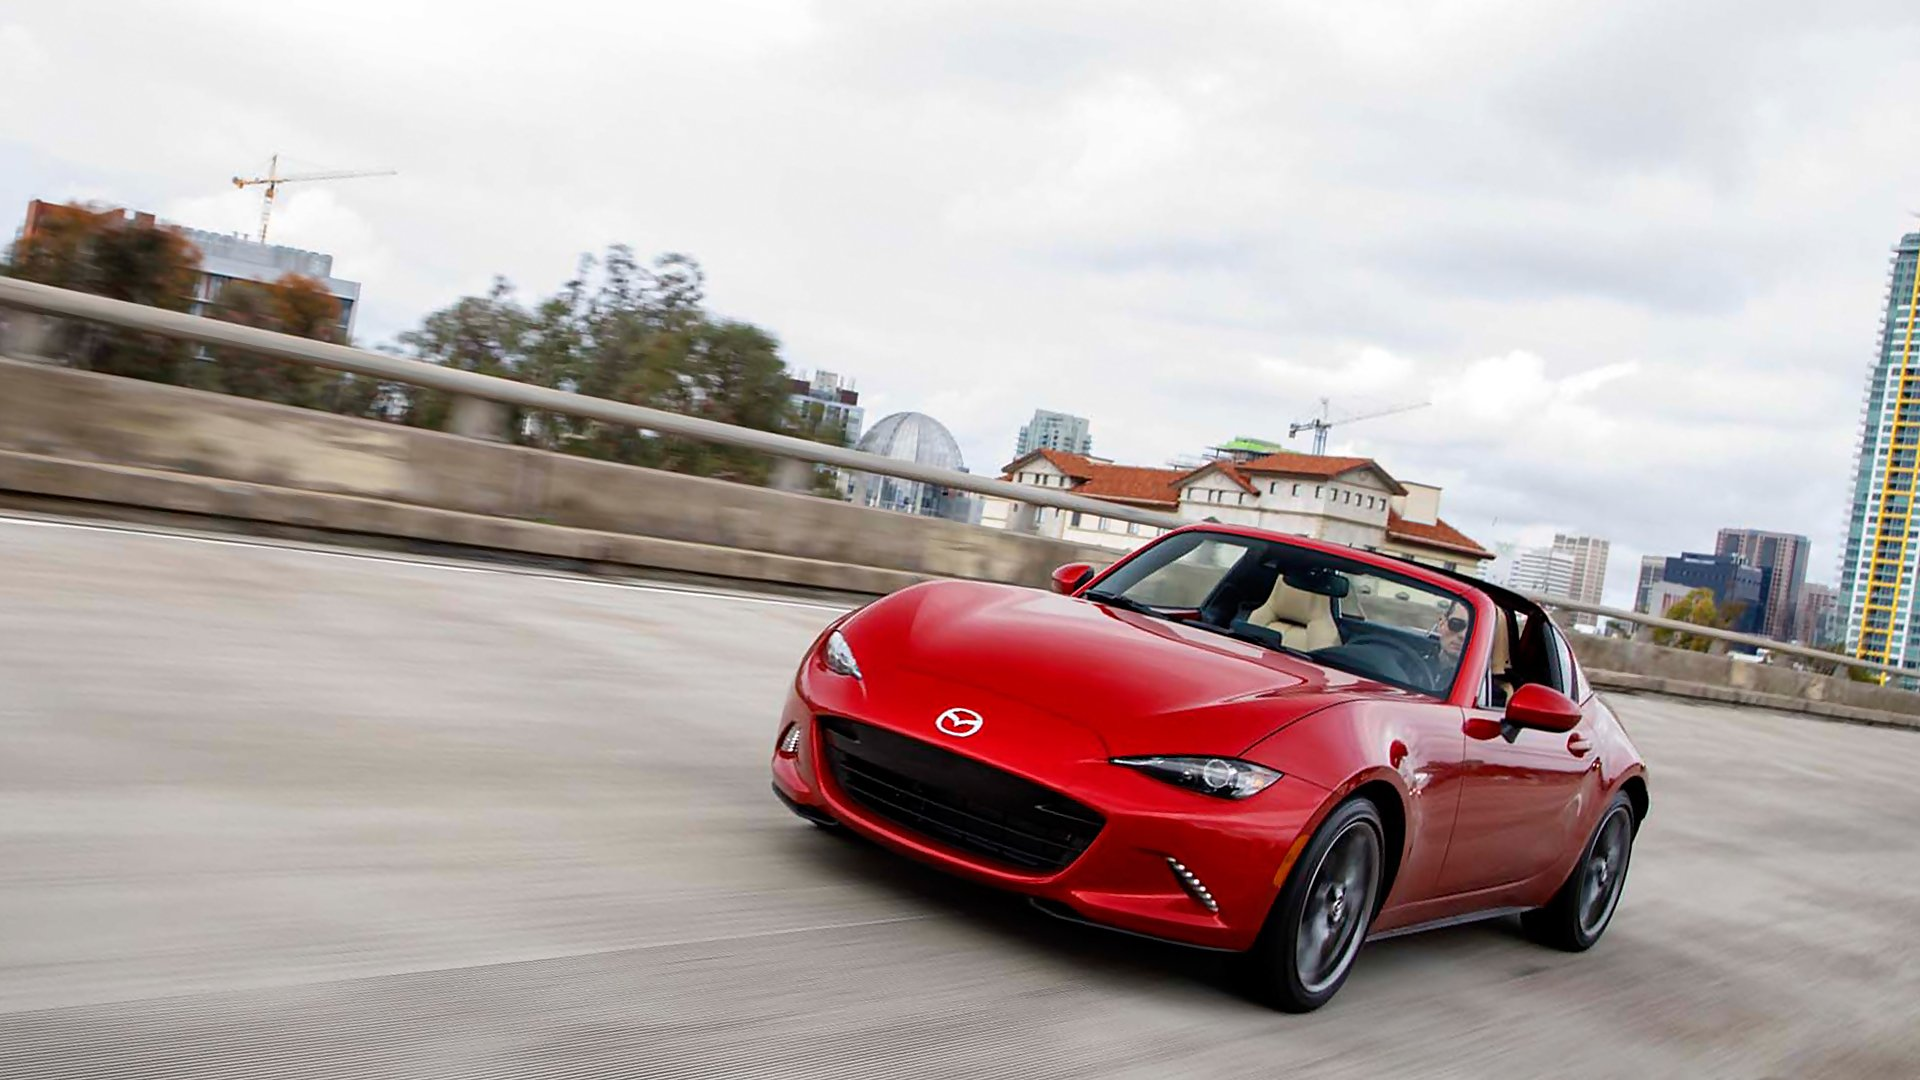 New 2019 Mazda MX 5 First Pictures